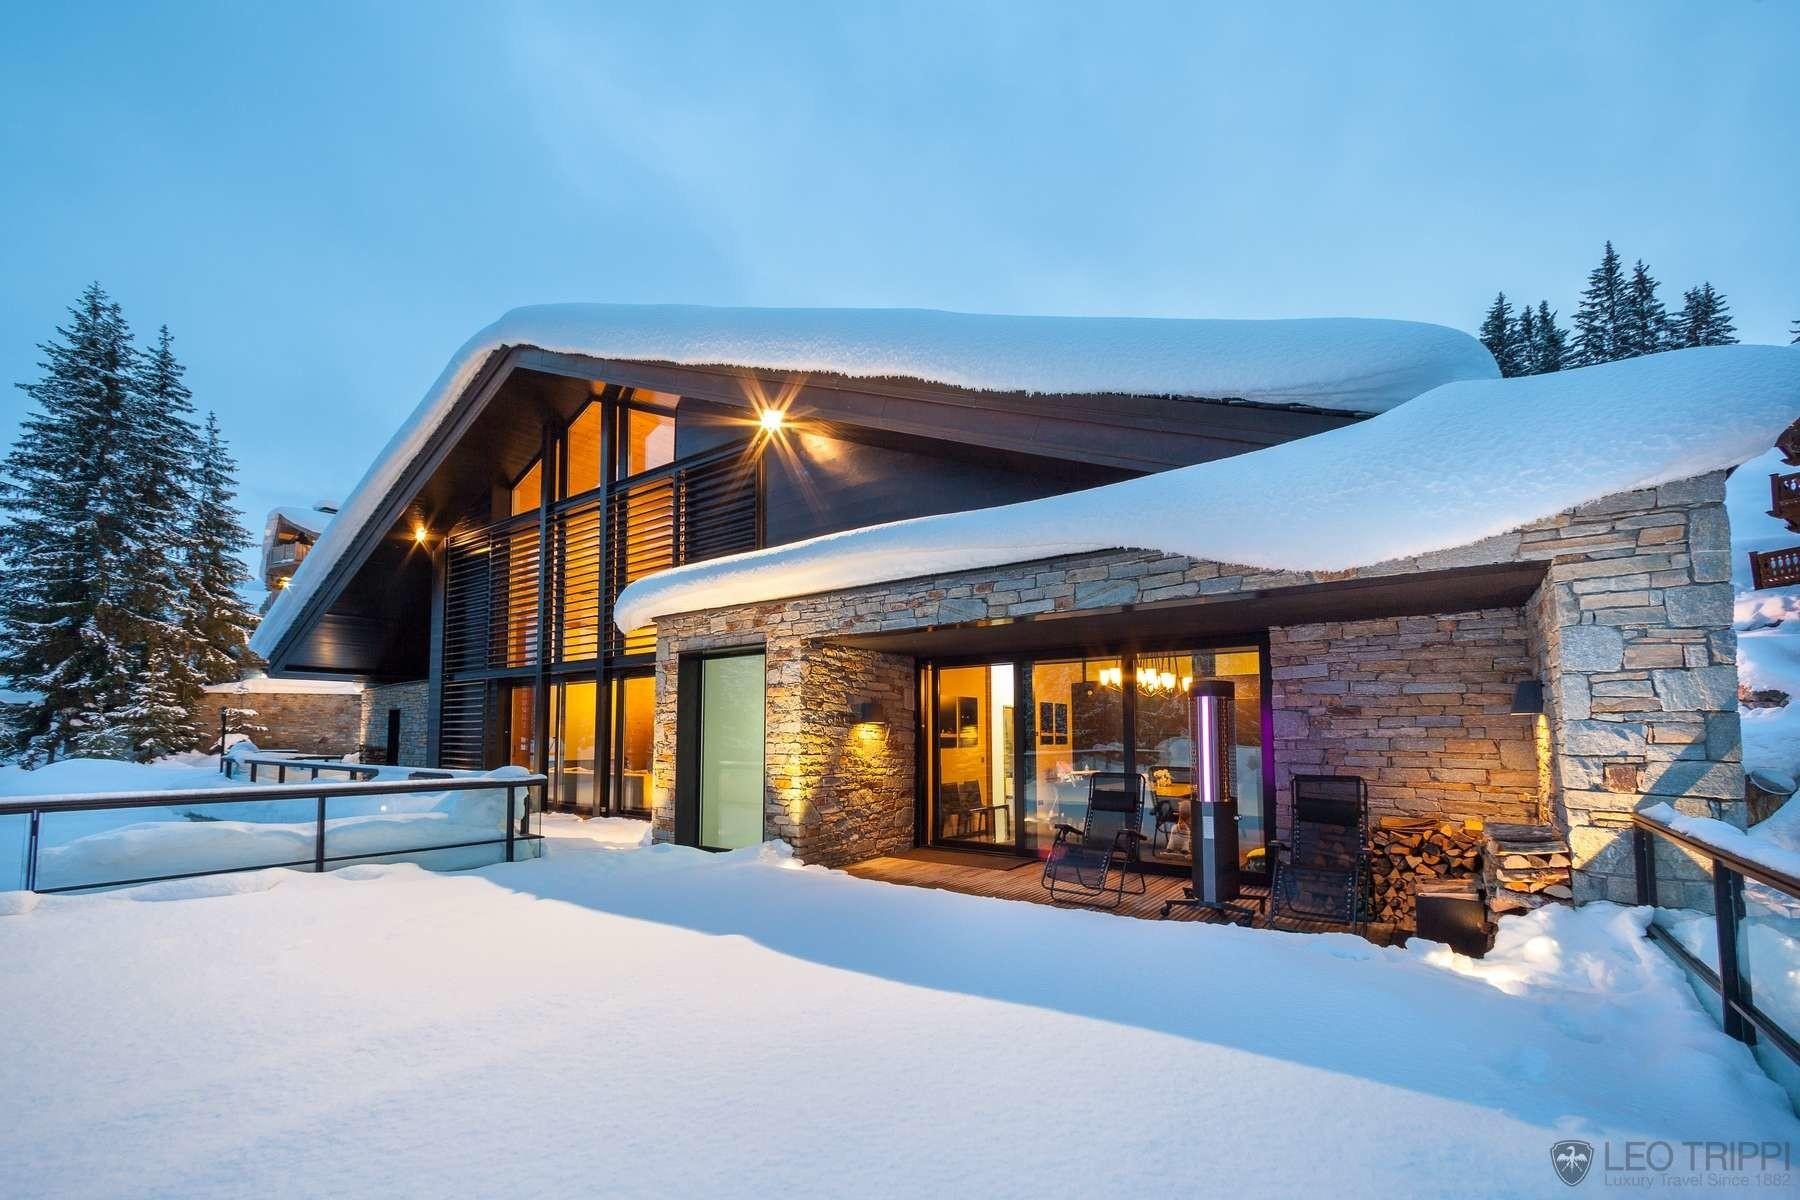 Location Chalet Luxe Courchevel 1850